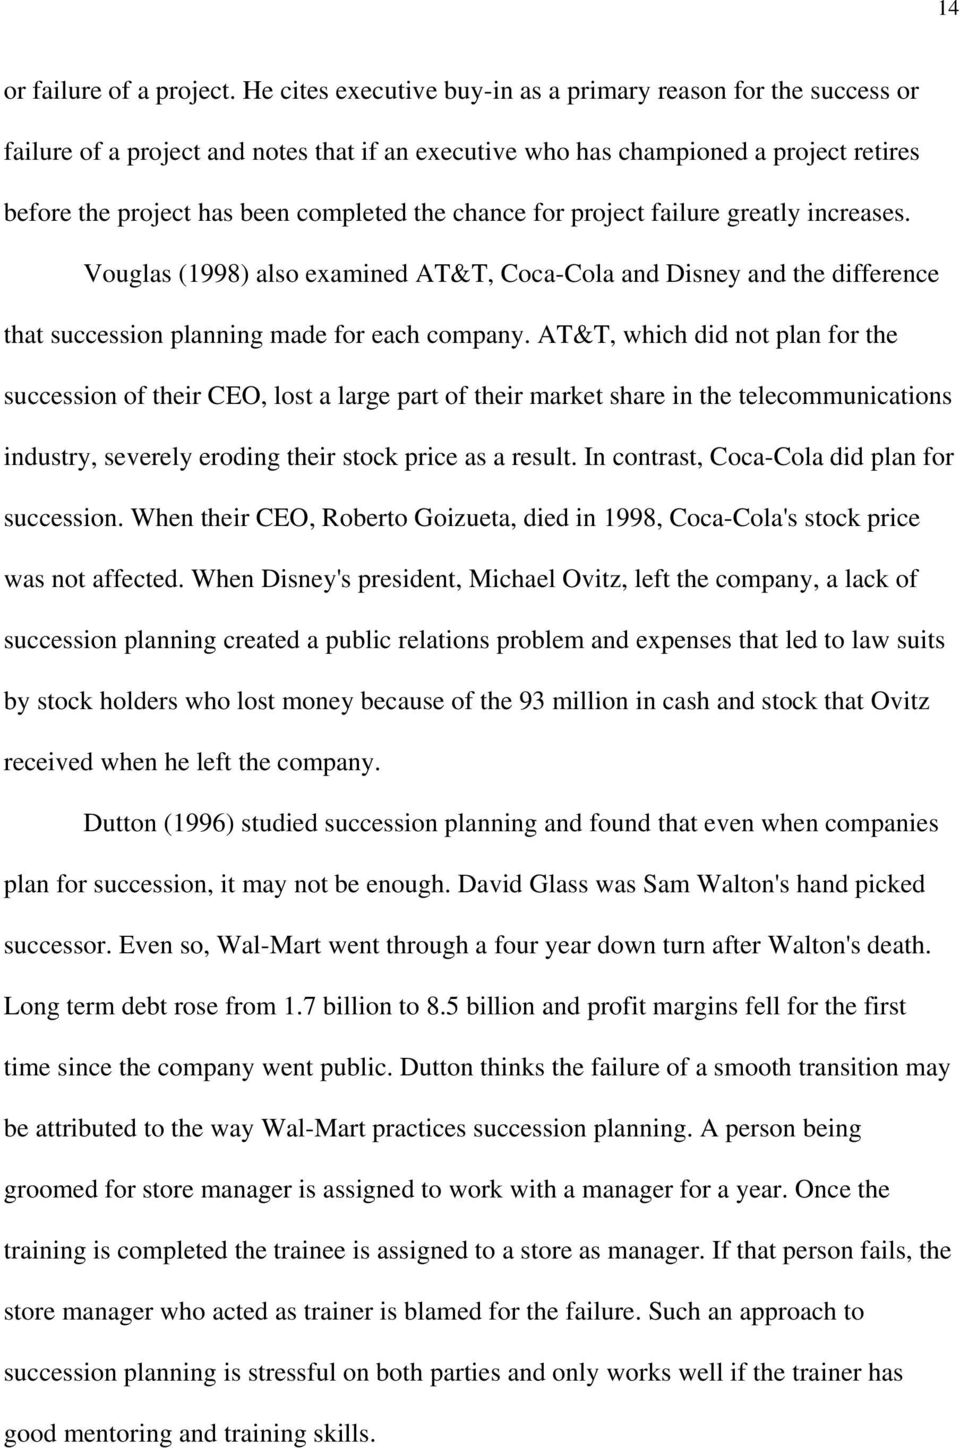 chance for project failure greatly increases. Vouglas (1998) also examined AT&T, Coca-Cola and Disney and the difference that succession planning made for each company.